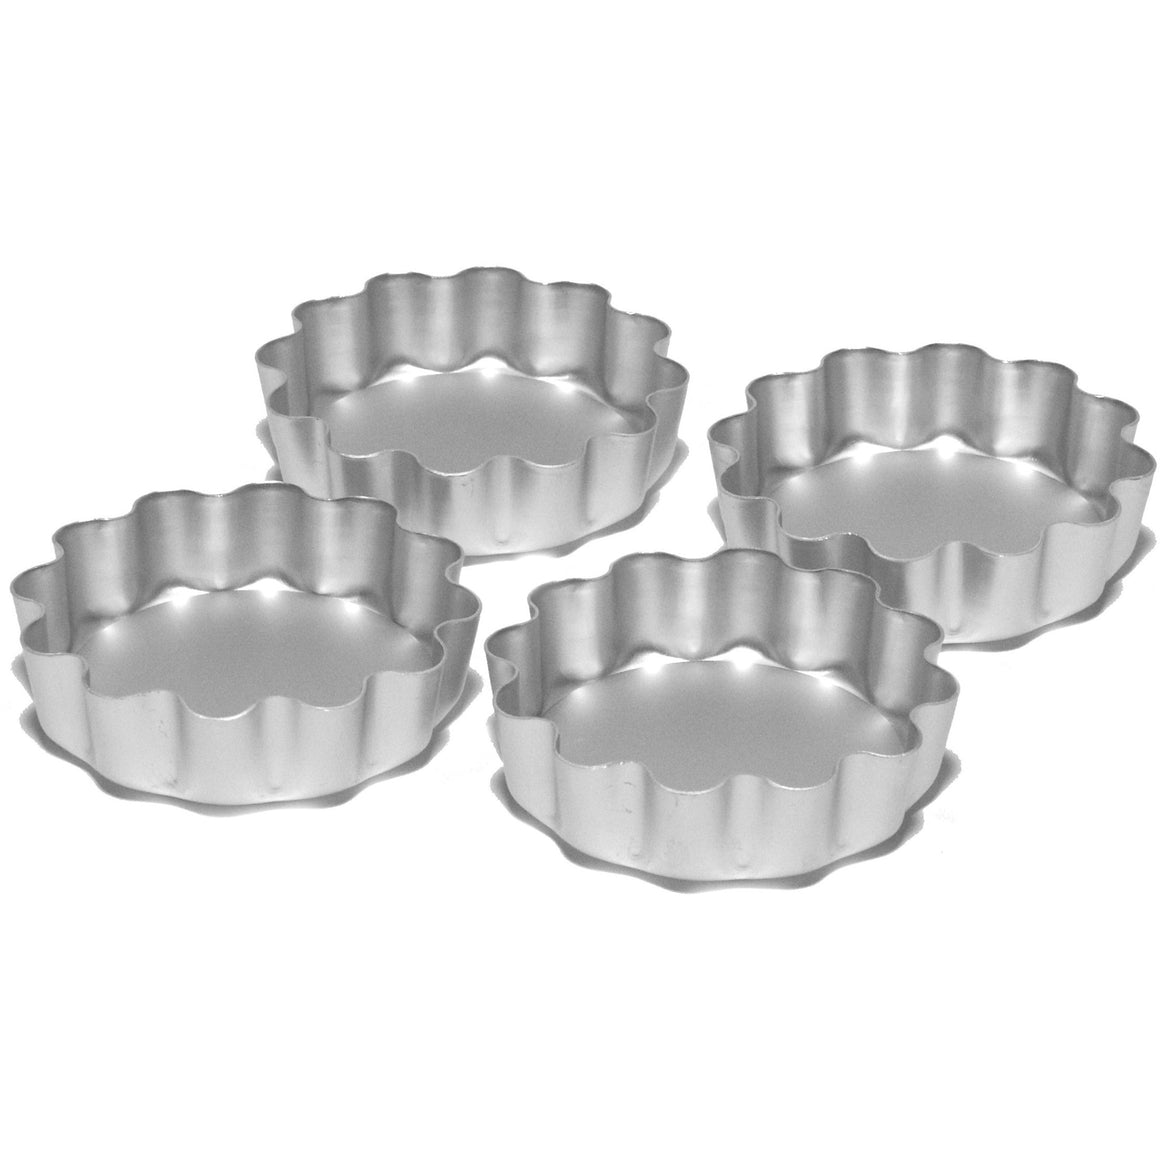 "Silverwood Set of 4 - 3å_"" Deep Fluted Flans"